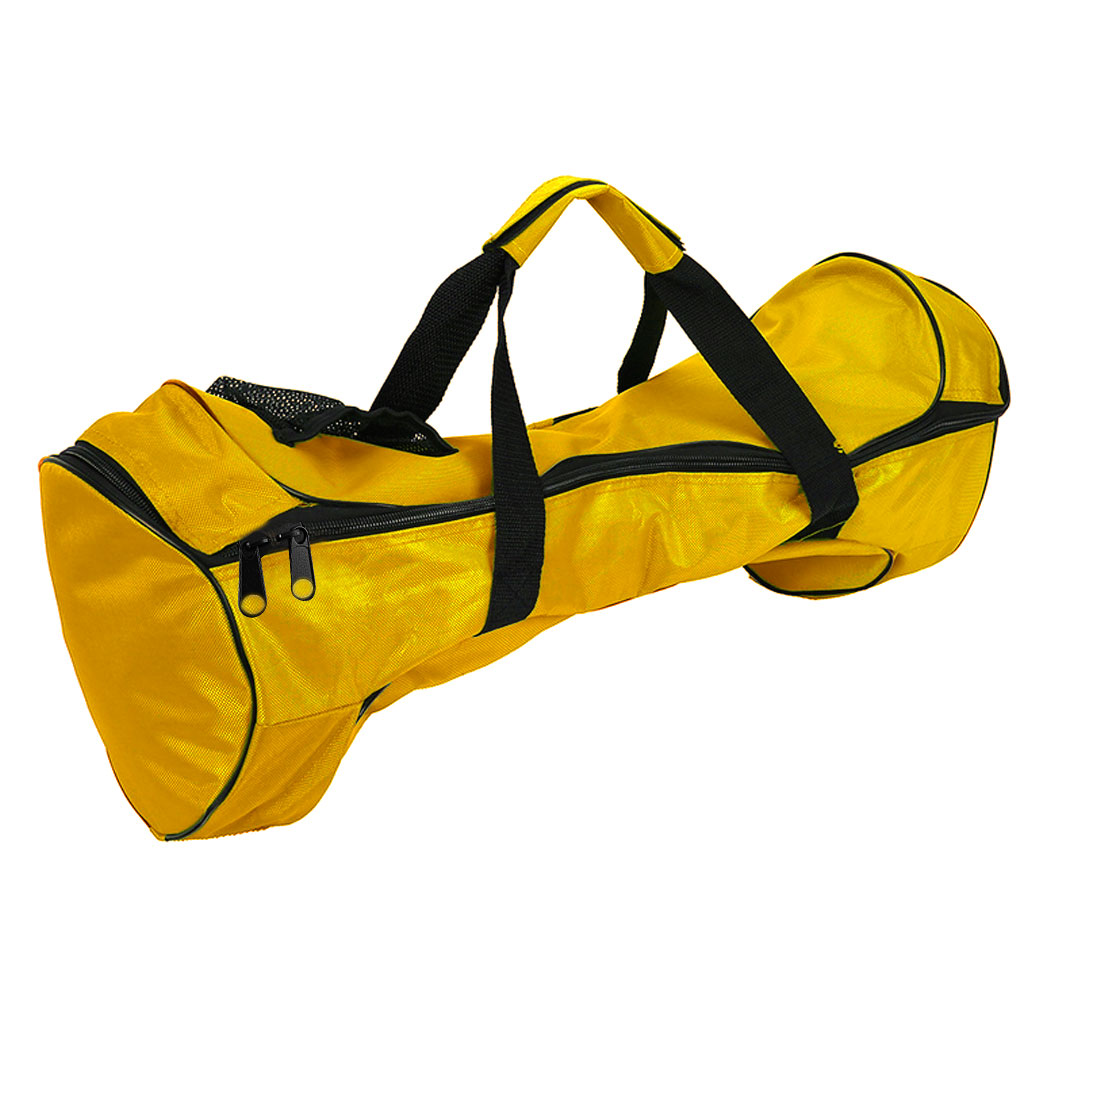 "Balancing Electric Unicycle Scooter Carrying Bag Yellow for 6.5"" Wheels"